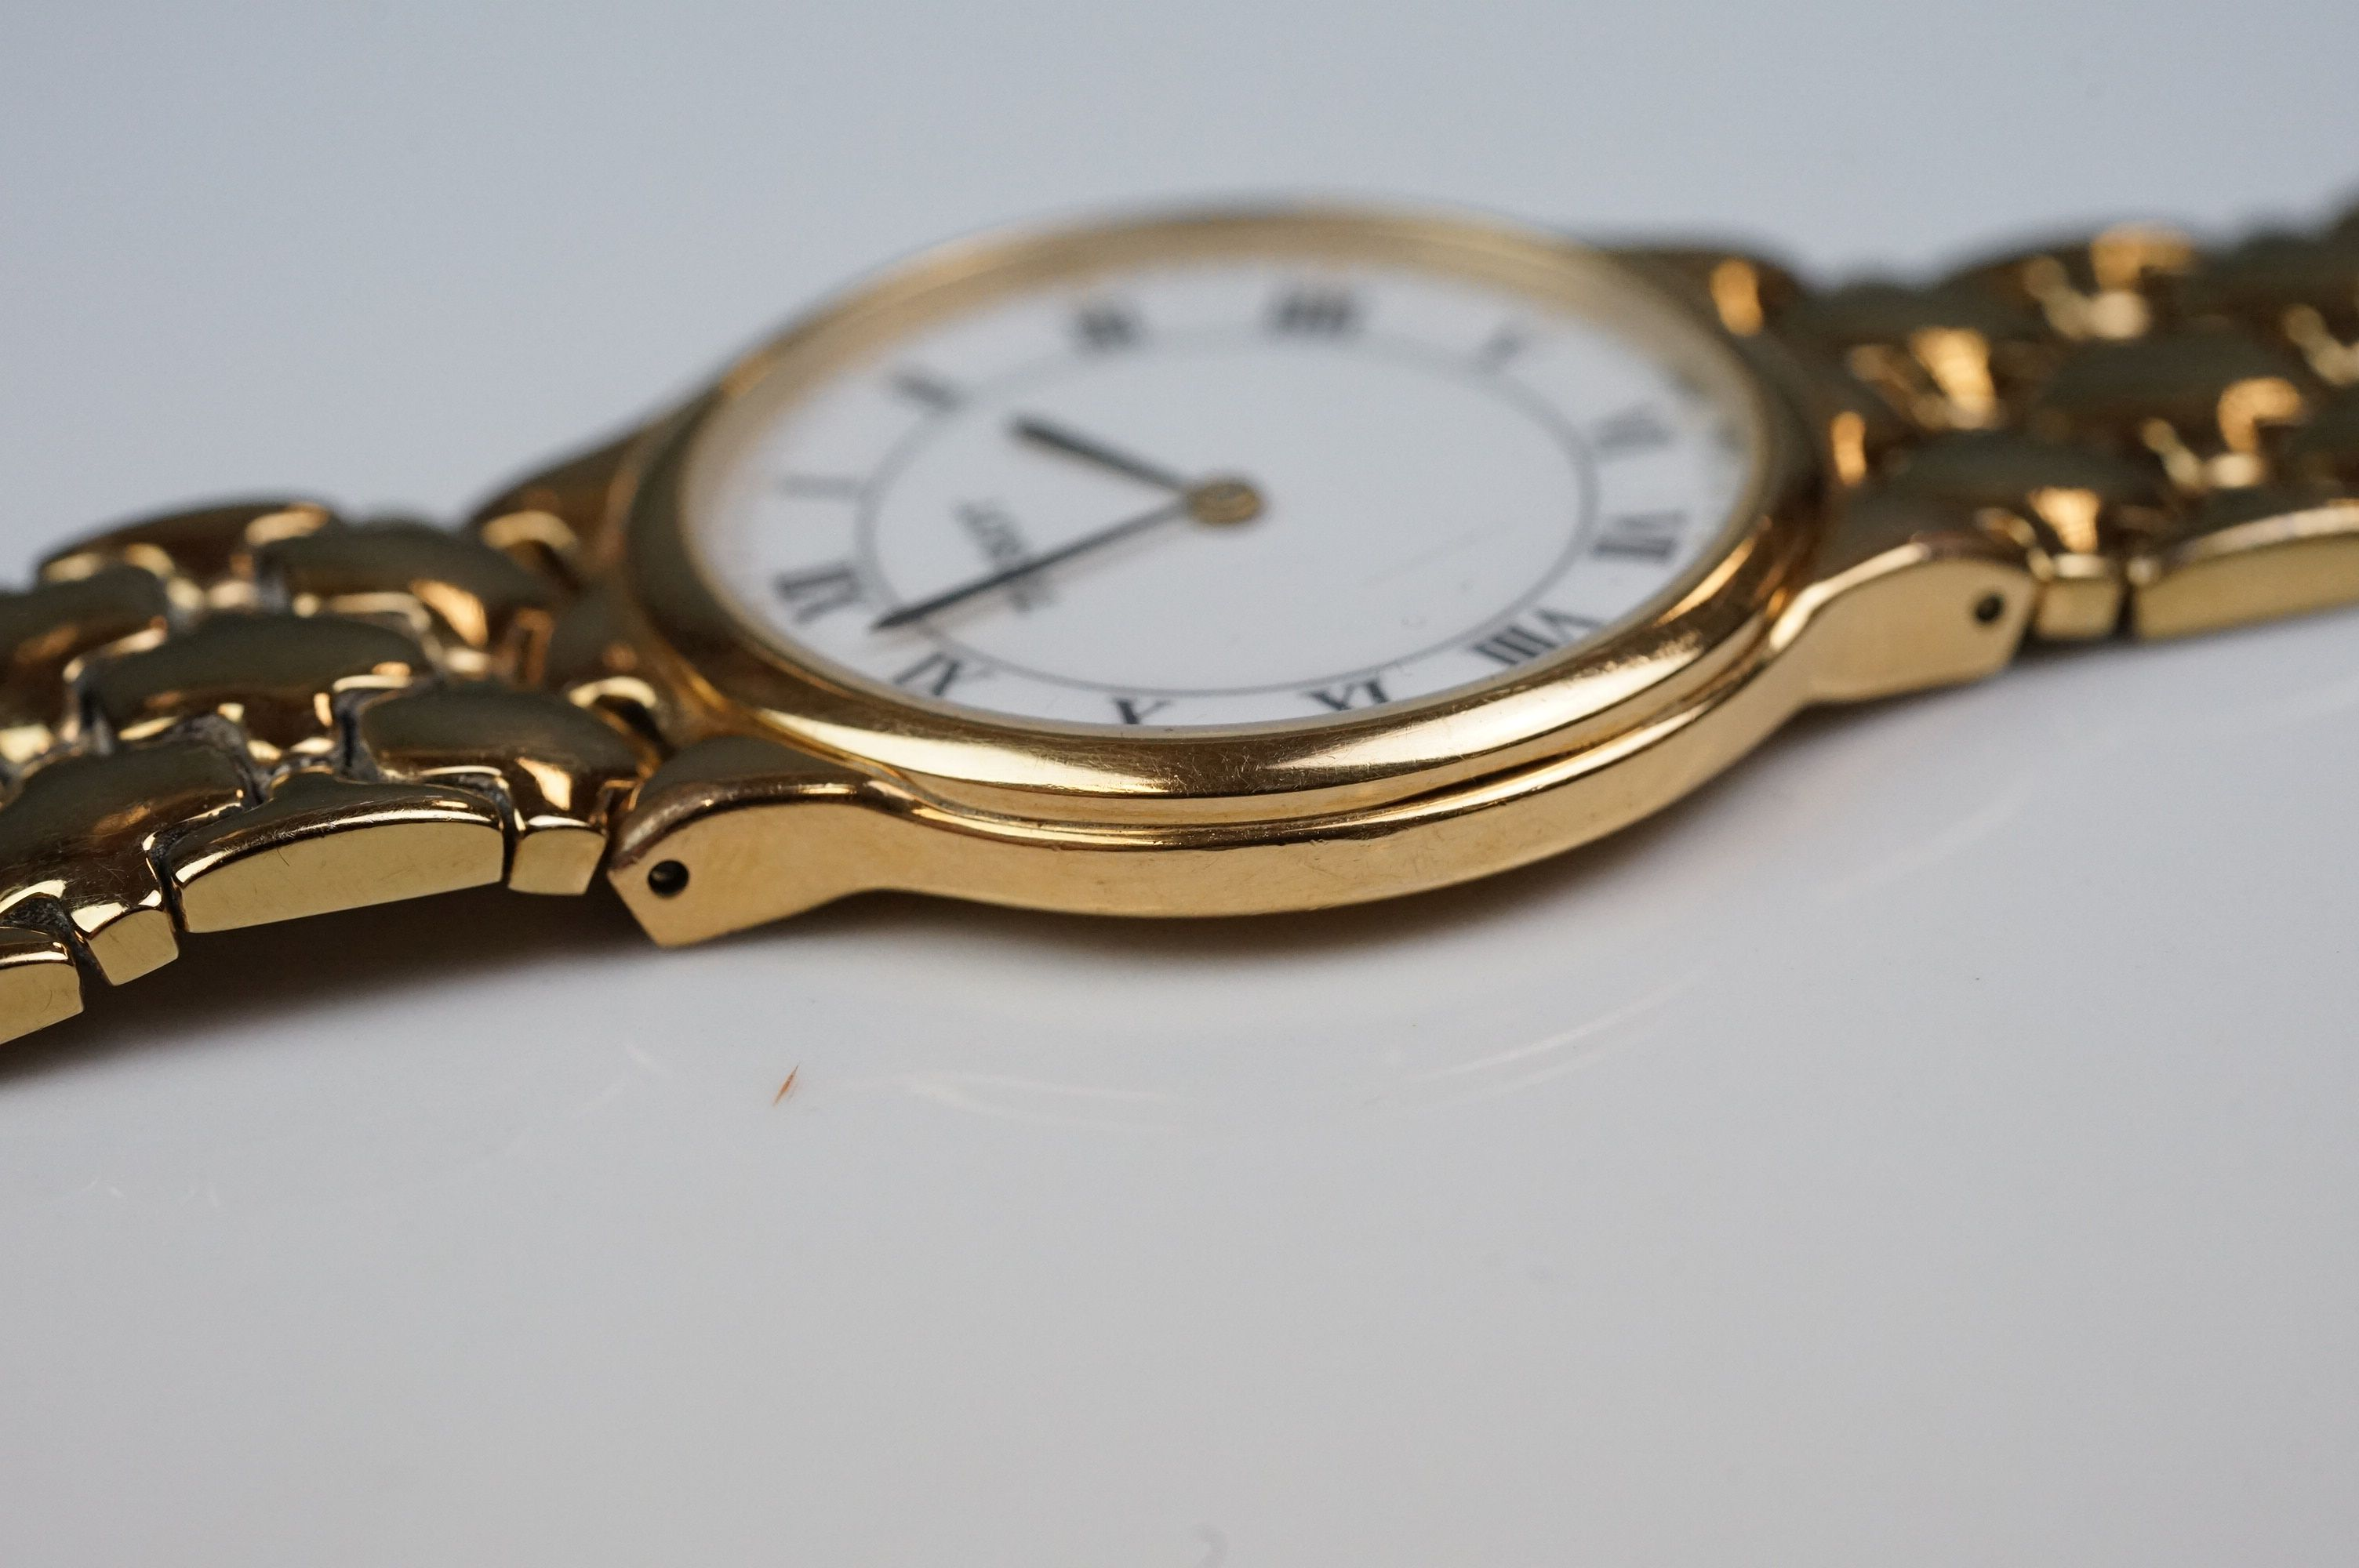 Tissot K250 gold plated dress watch - Image 5 of 10